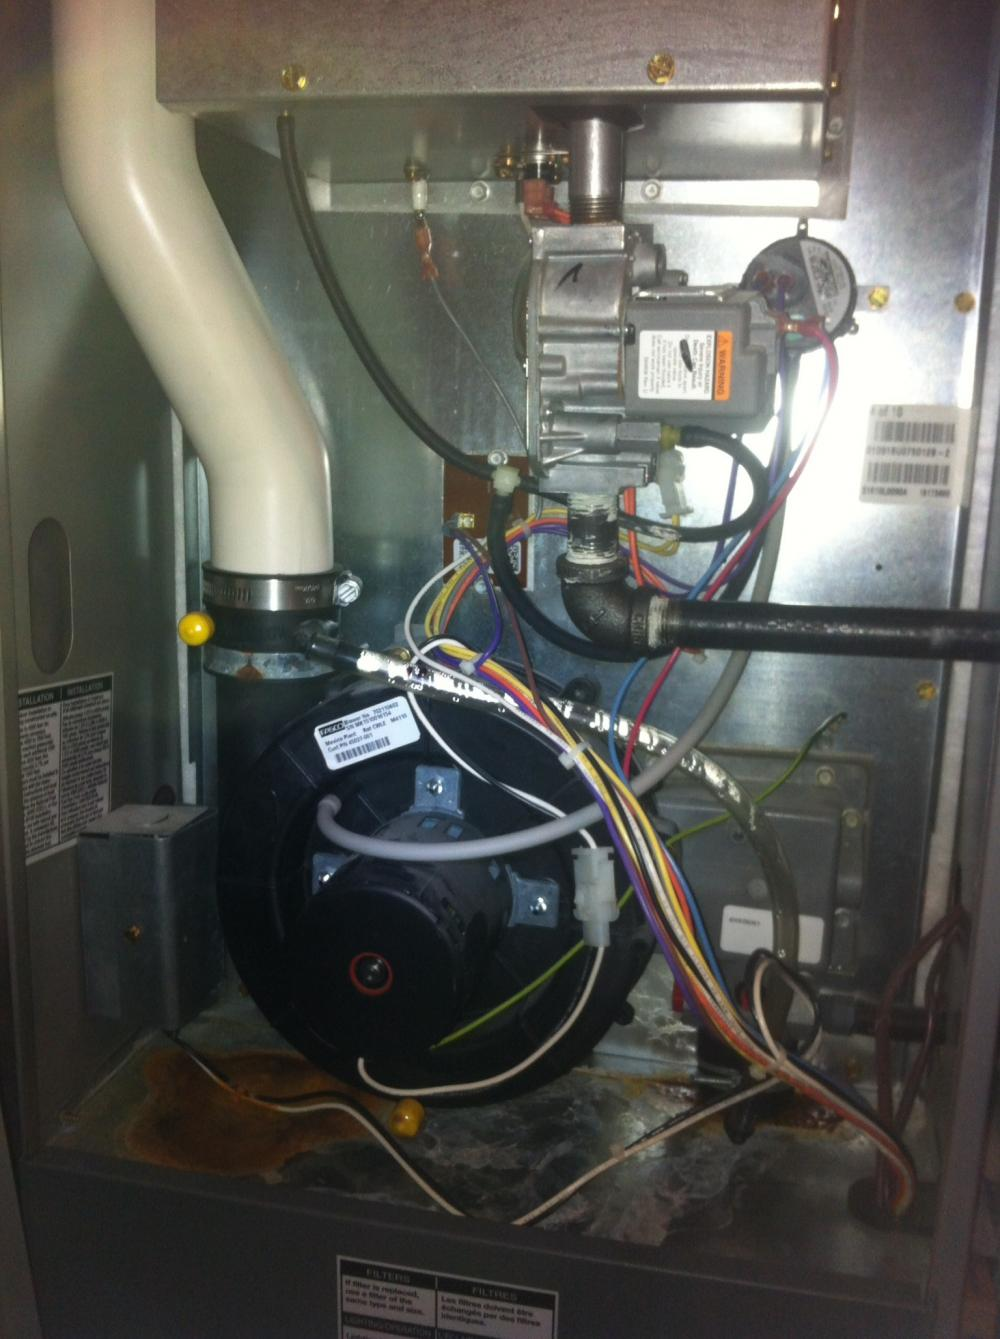 Thermostat Wiring Diagram Additionally High Efficiency Gas Furnace On